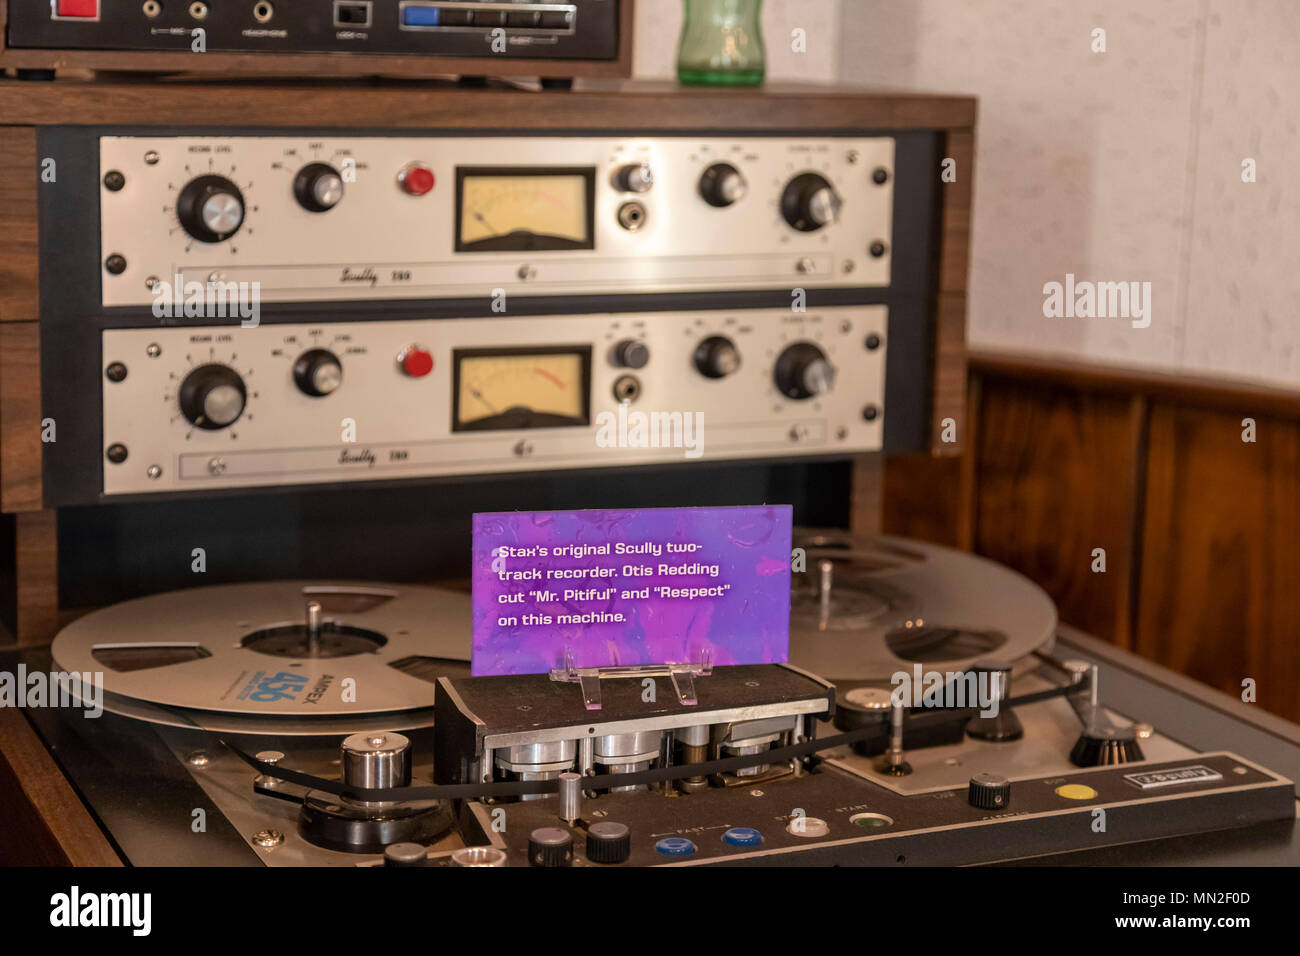 Memphis, Tennessee - Vintage recording equipment at the Stax Museum of American Soul Music, the former location of Stax Records. - Stock Image